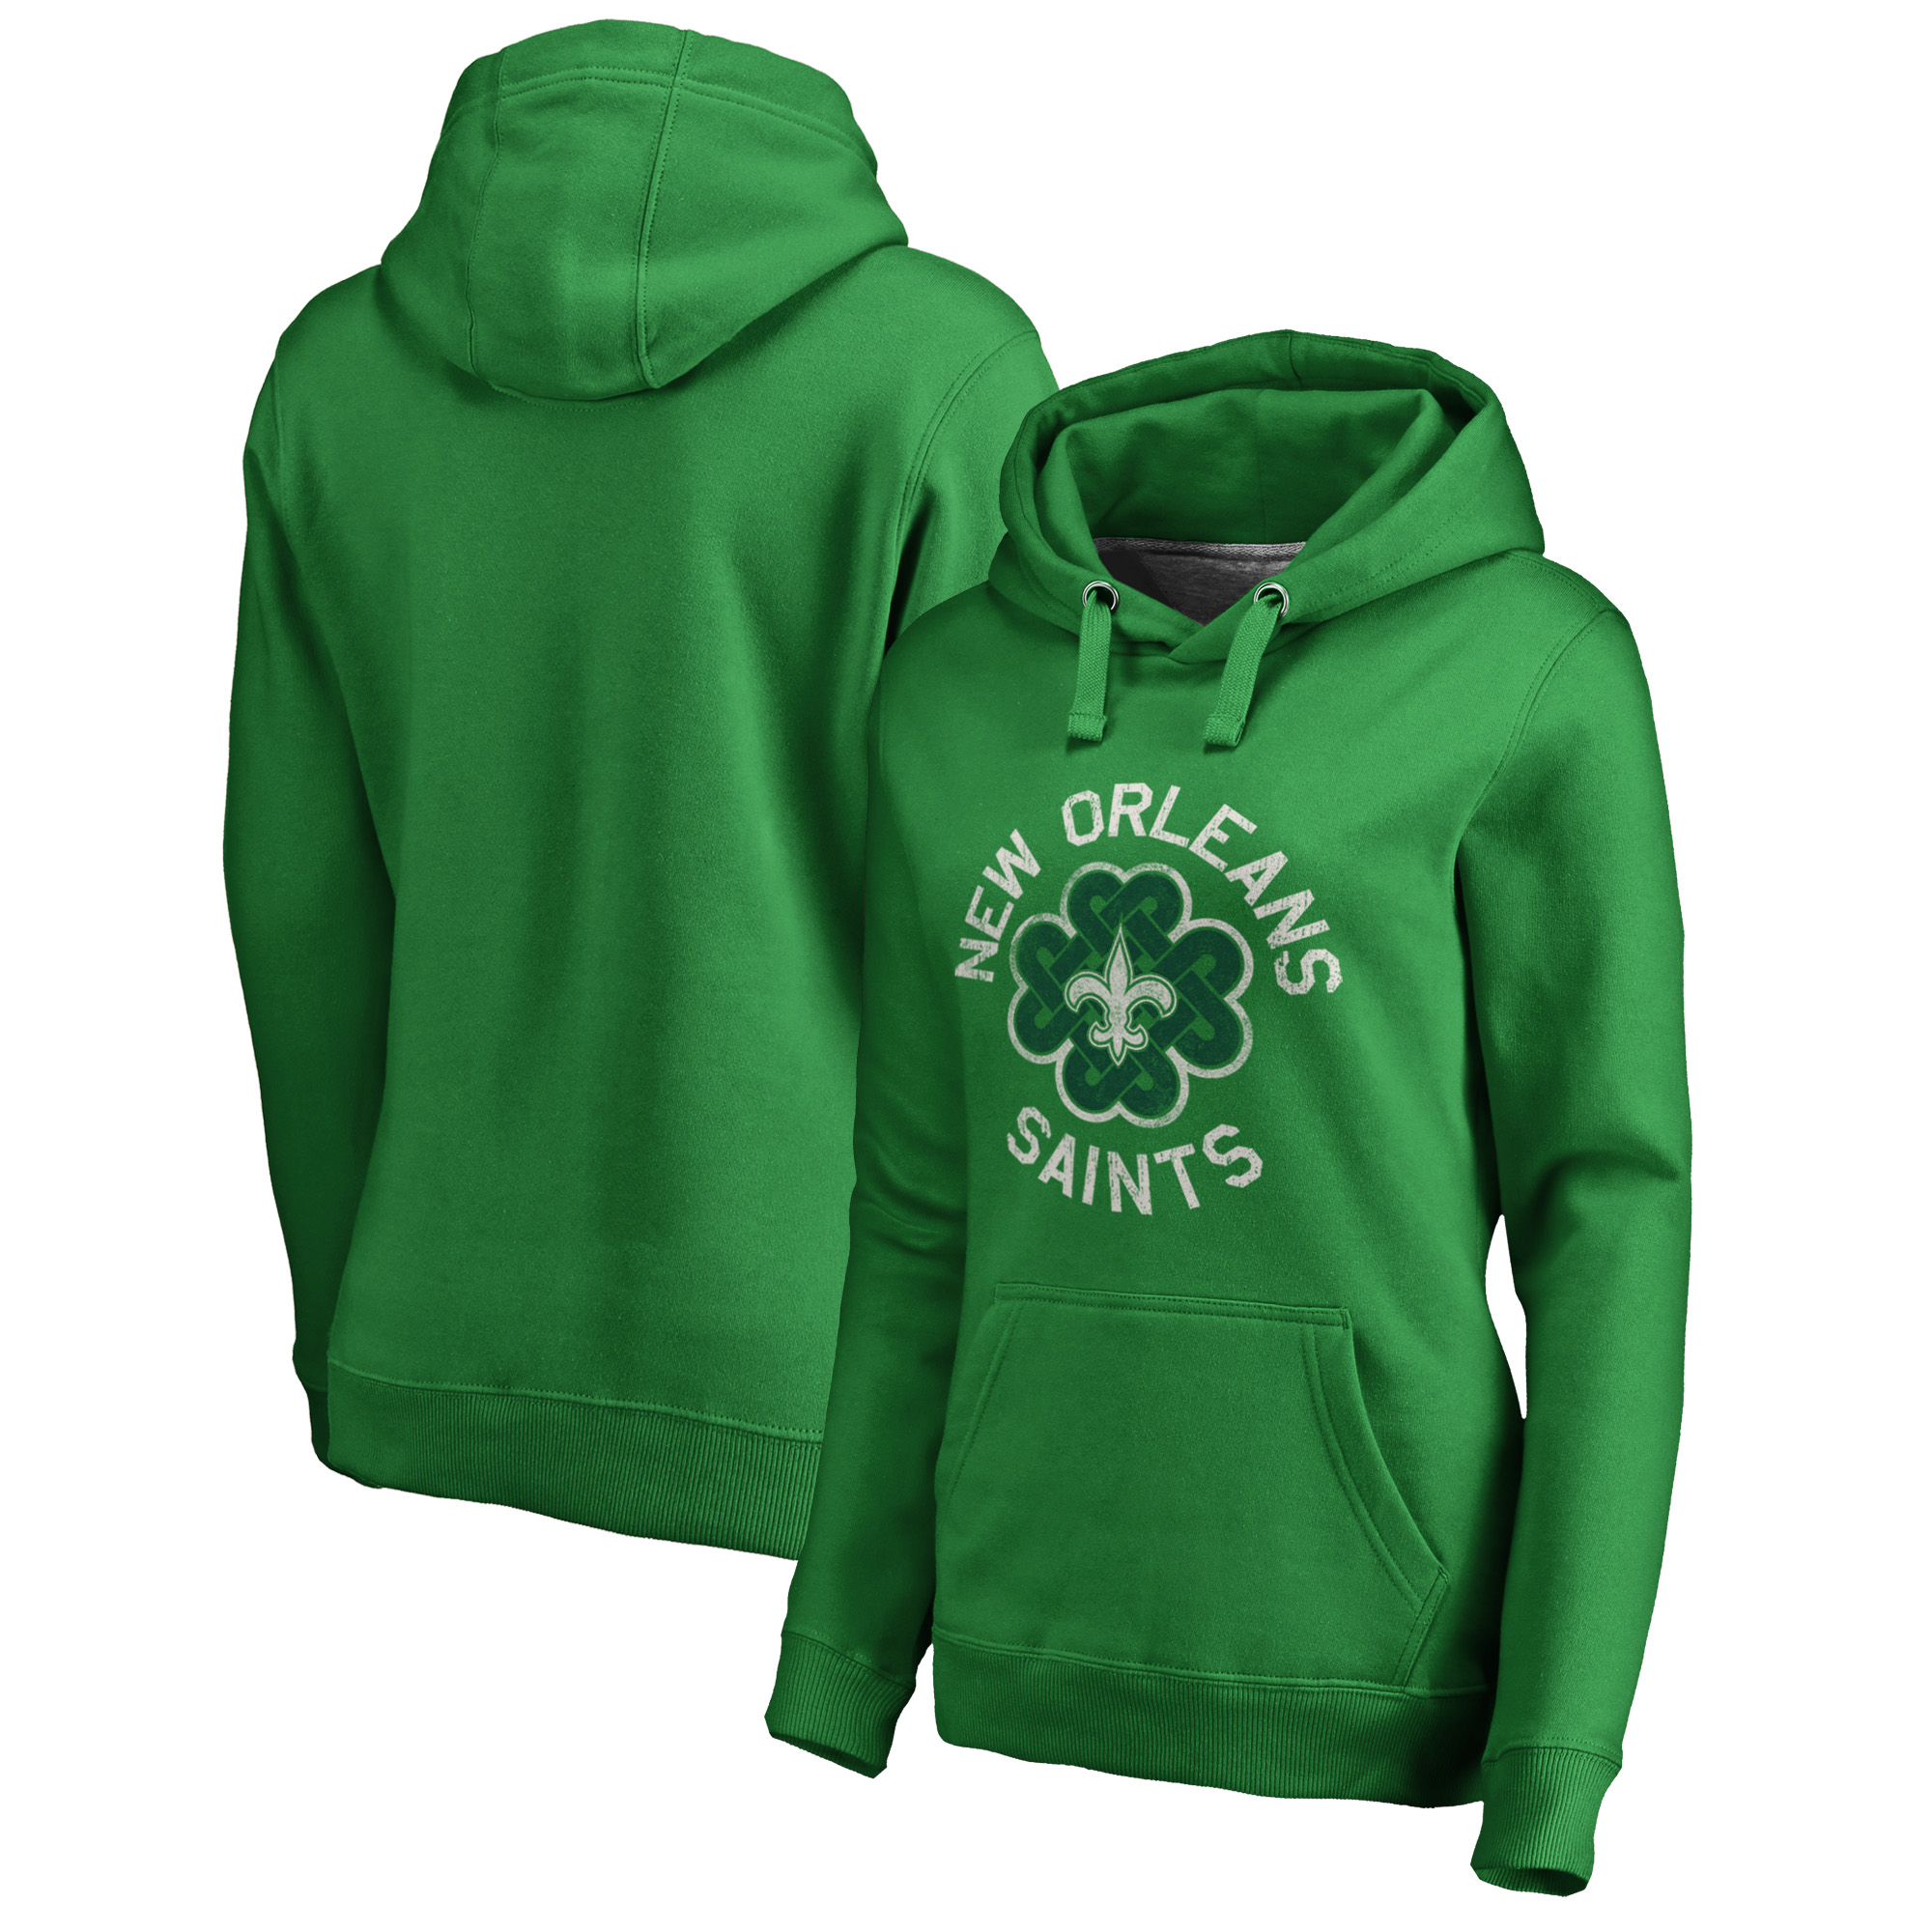 New Orleans Saints NFL Pro Line by Fanatics Branded Women's St. Patrick's Day Luck Tradition Pullover Hoodie - Kelly Green